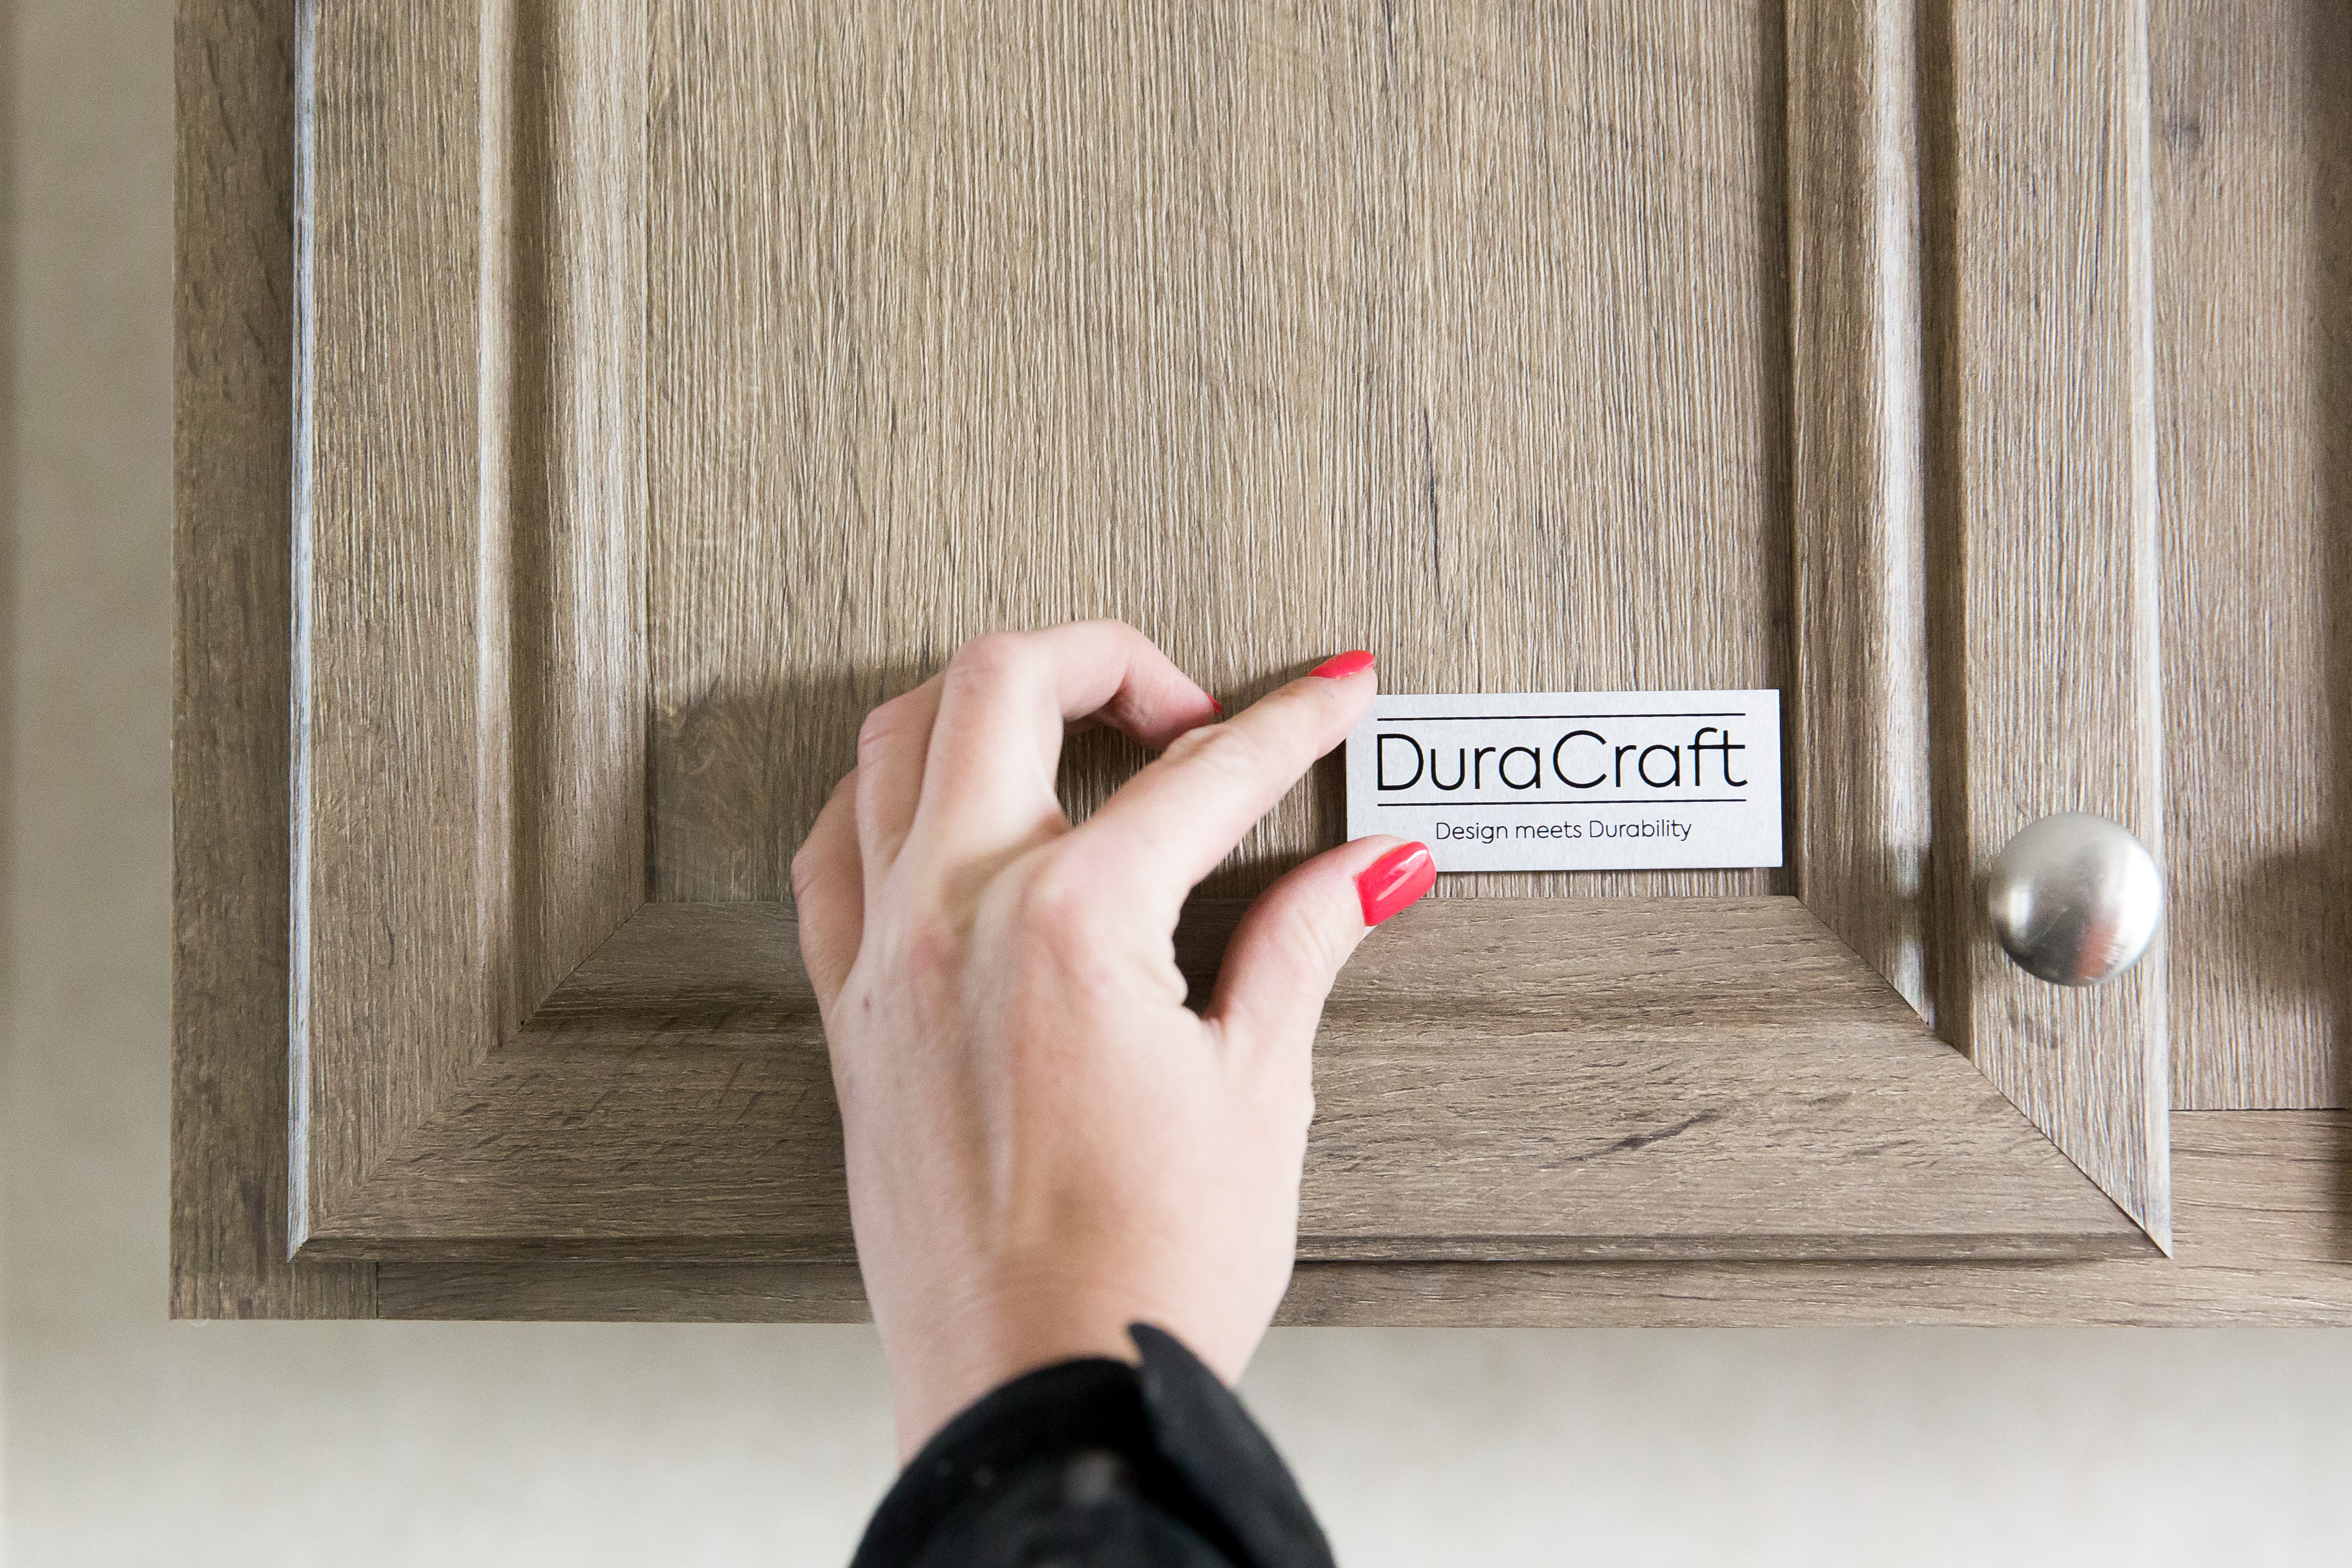 Hand putting DuraCraft logo sign on light colored cabinet.